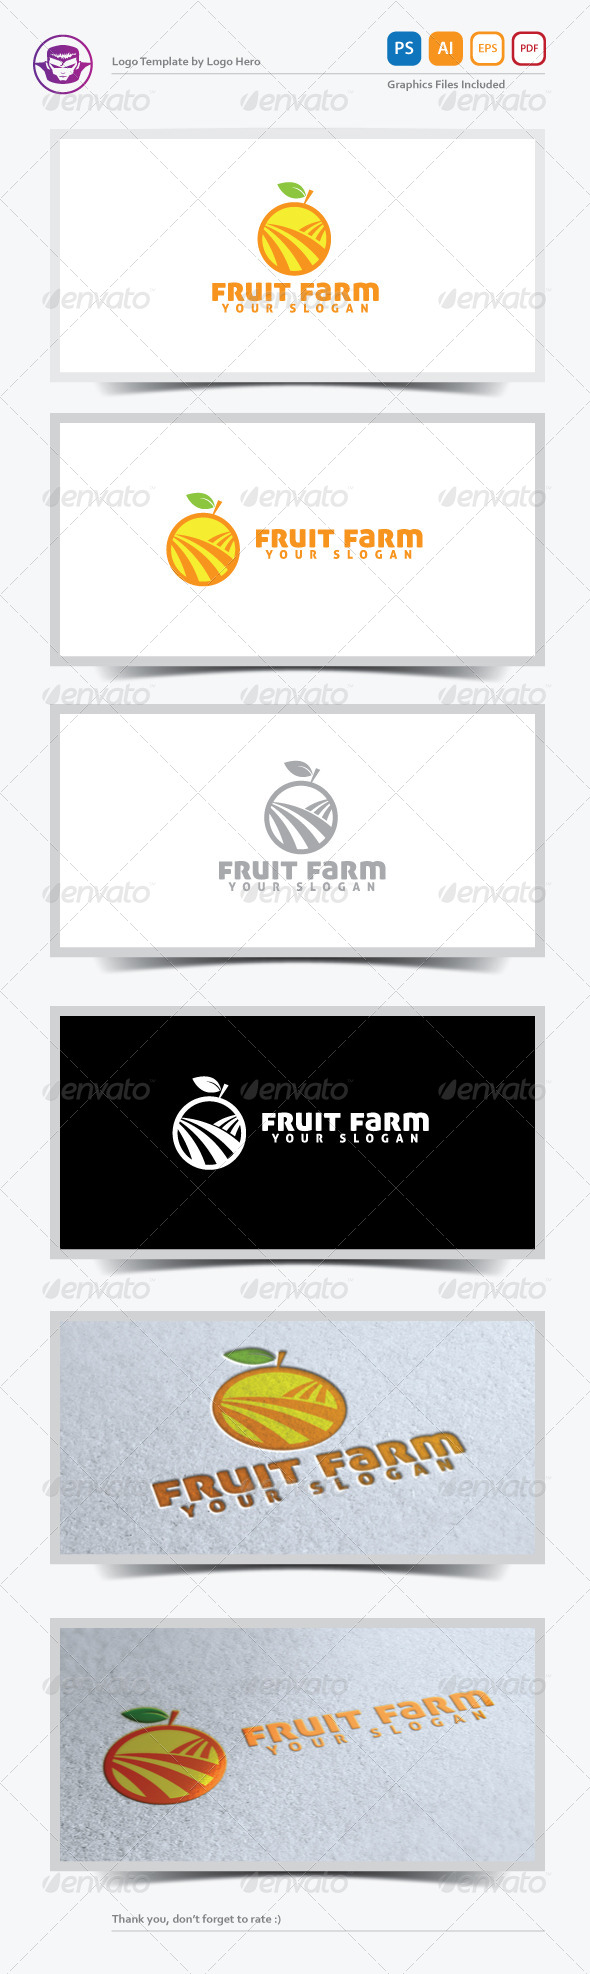 GraphicRiver Fruit Farm Logo Template 5220930